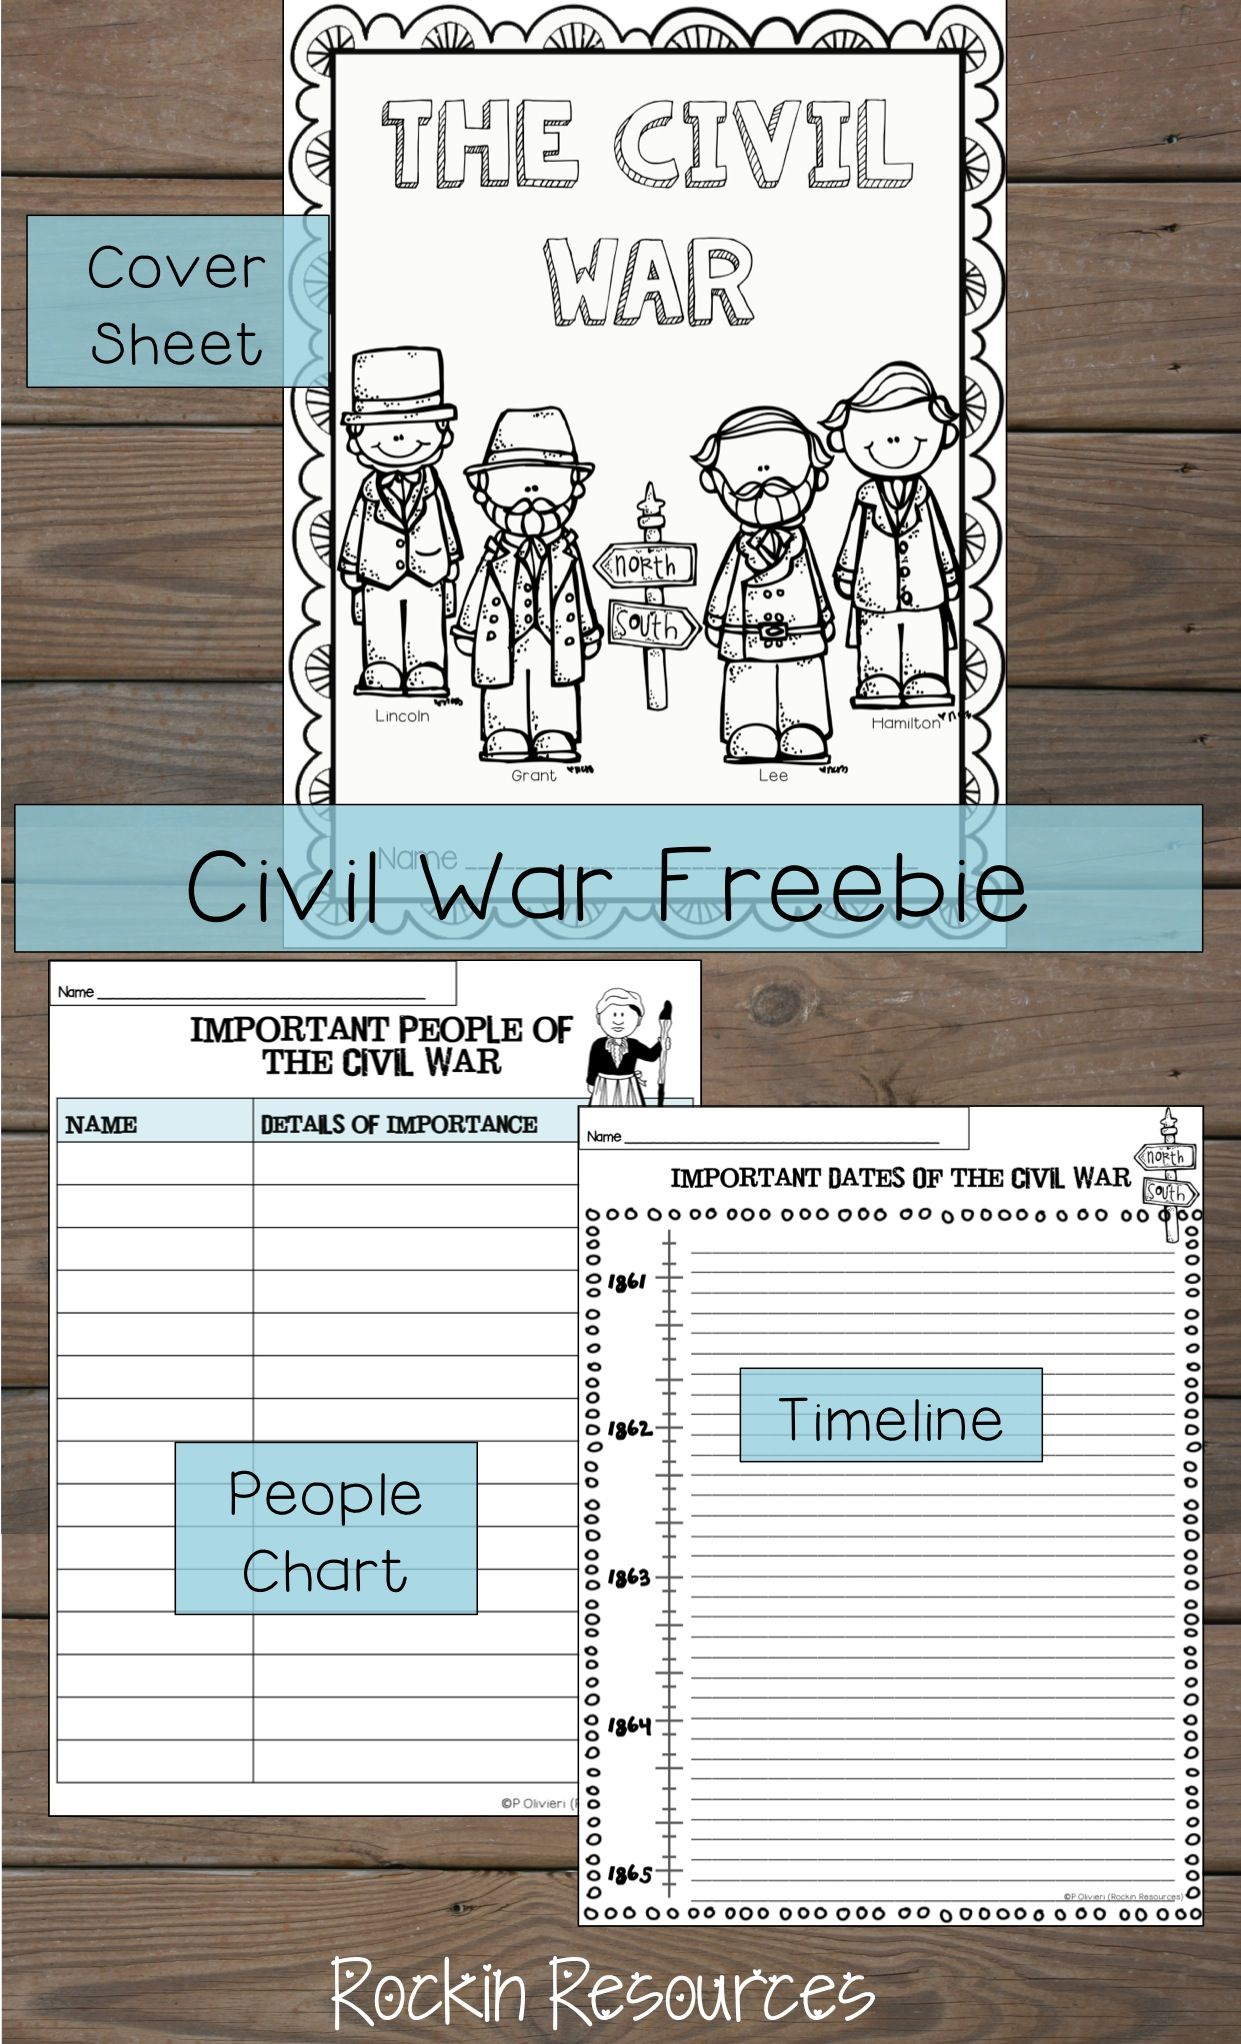 Civil War Timeline Cover Page And Chart Free